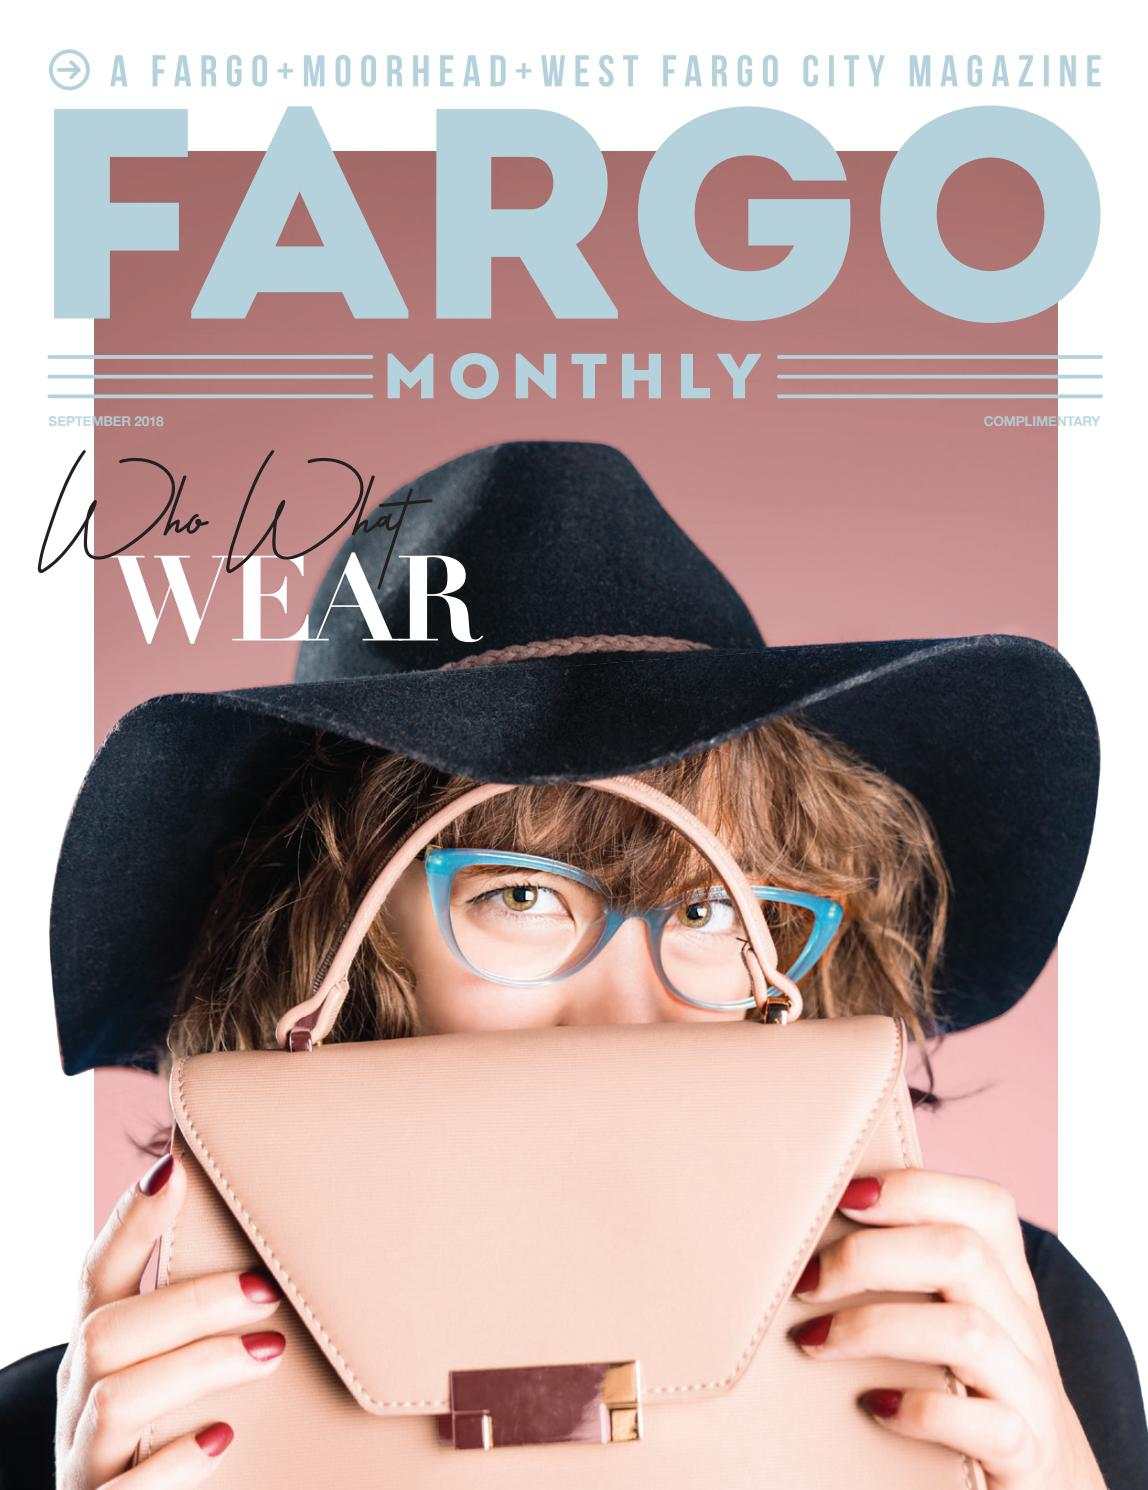 Fargo Monthly September 2018 by Spotlight Media - issuu 24bc49713e6